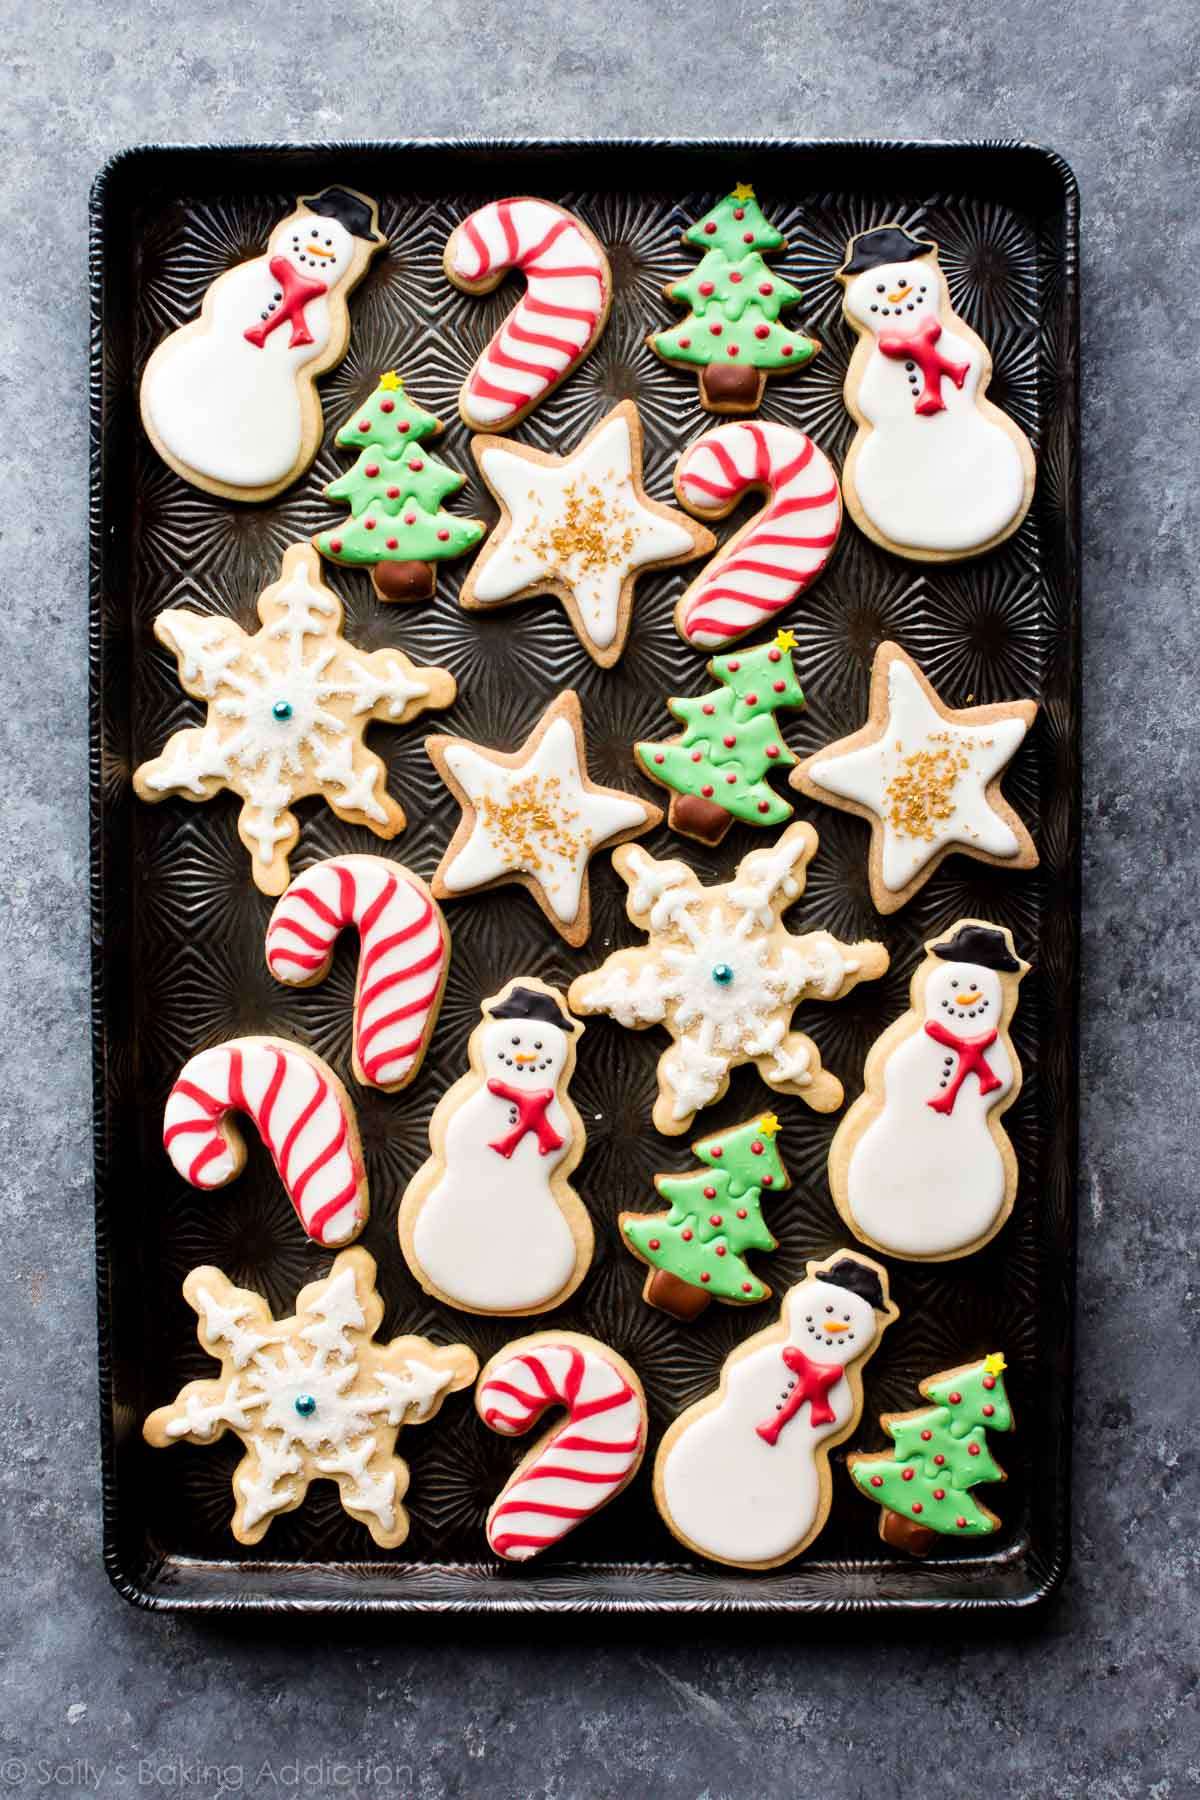 Pictures Of Christmas Cookies Decorated  1 Sugar Cookie Dough 5 Ways to Decorate Sallys Baking